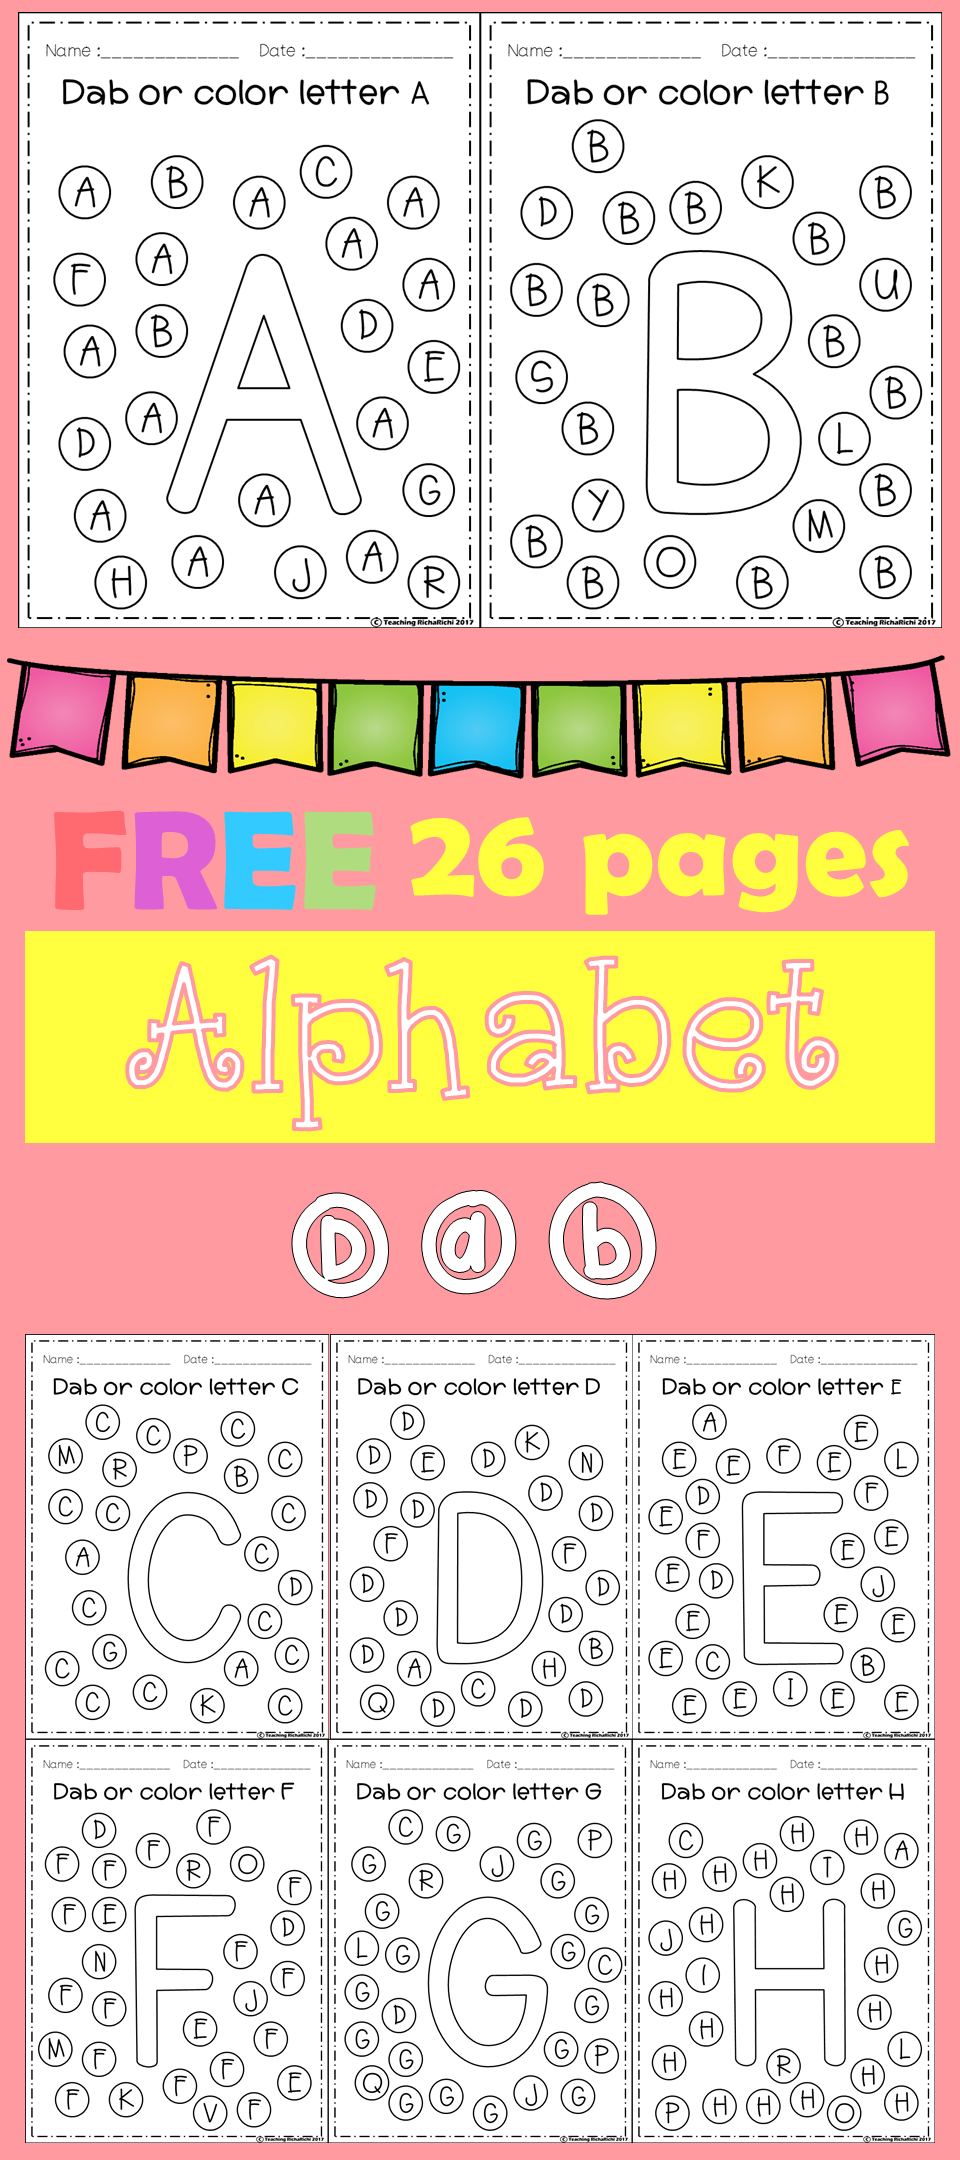 FREE Freebies Alphabet Dap A-Z 26 pages. For PreK and Kindergarten ...